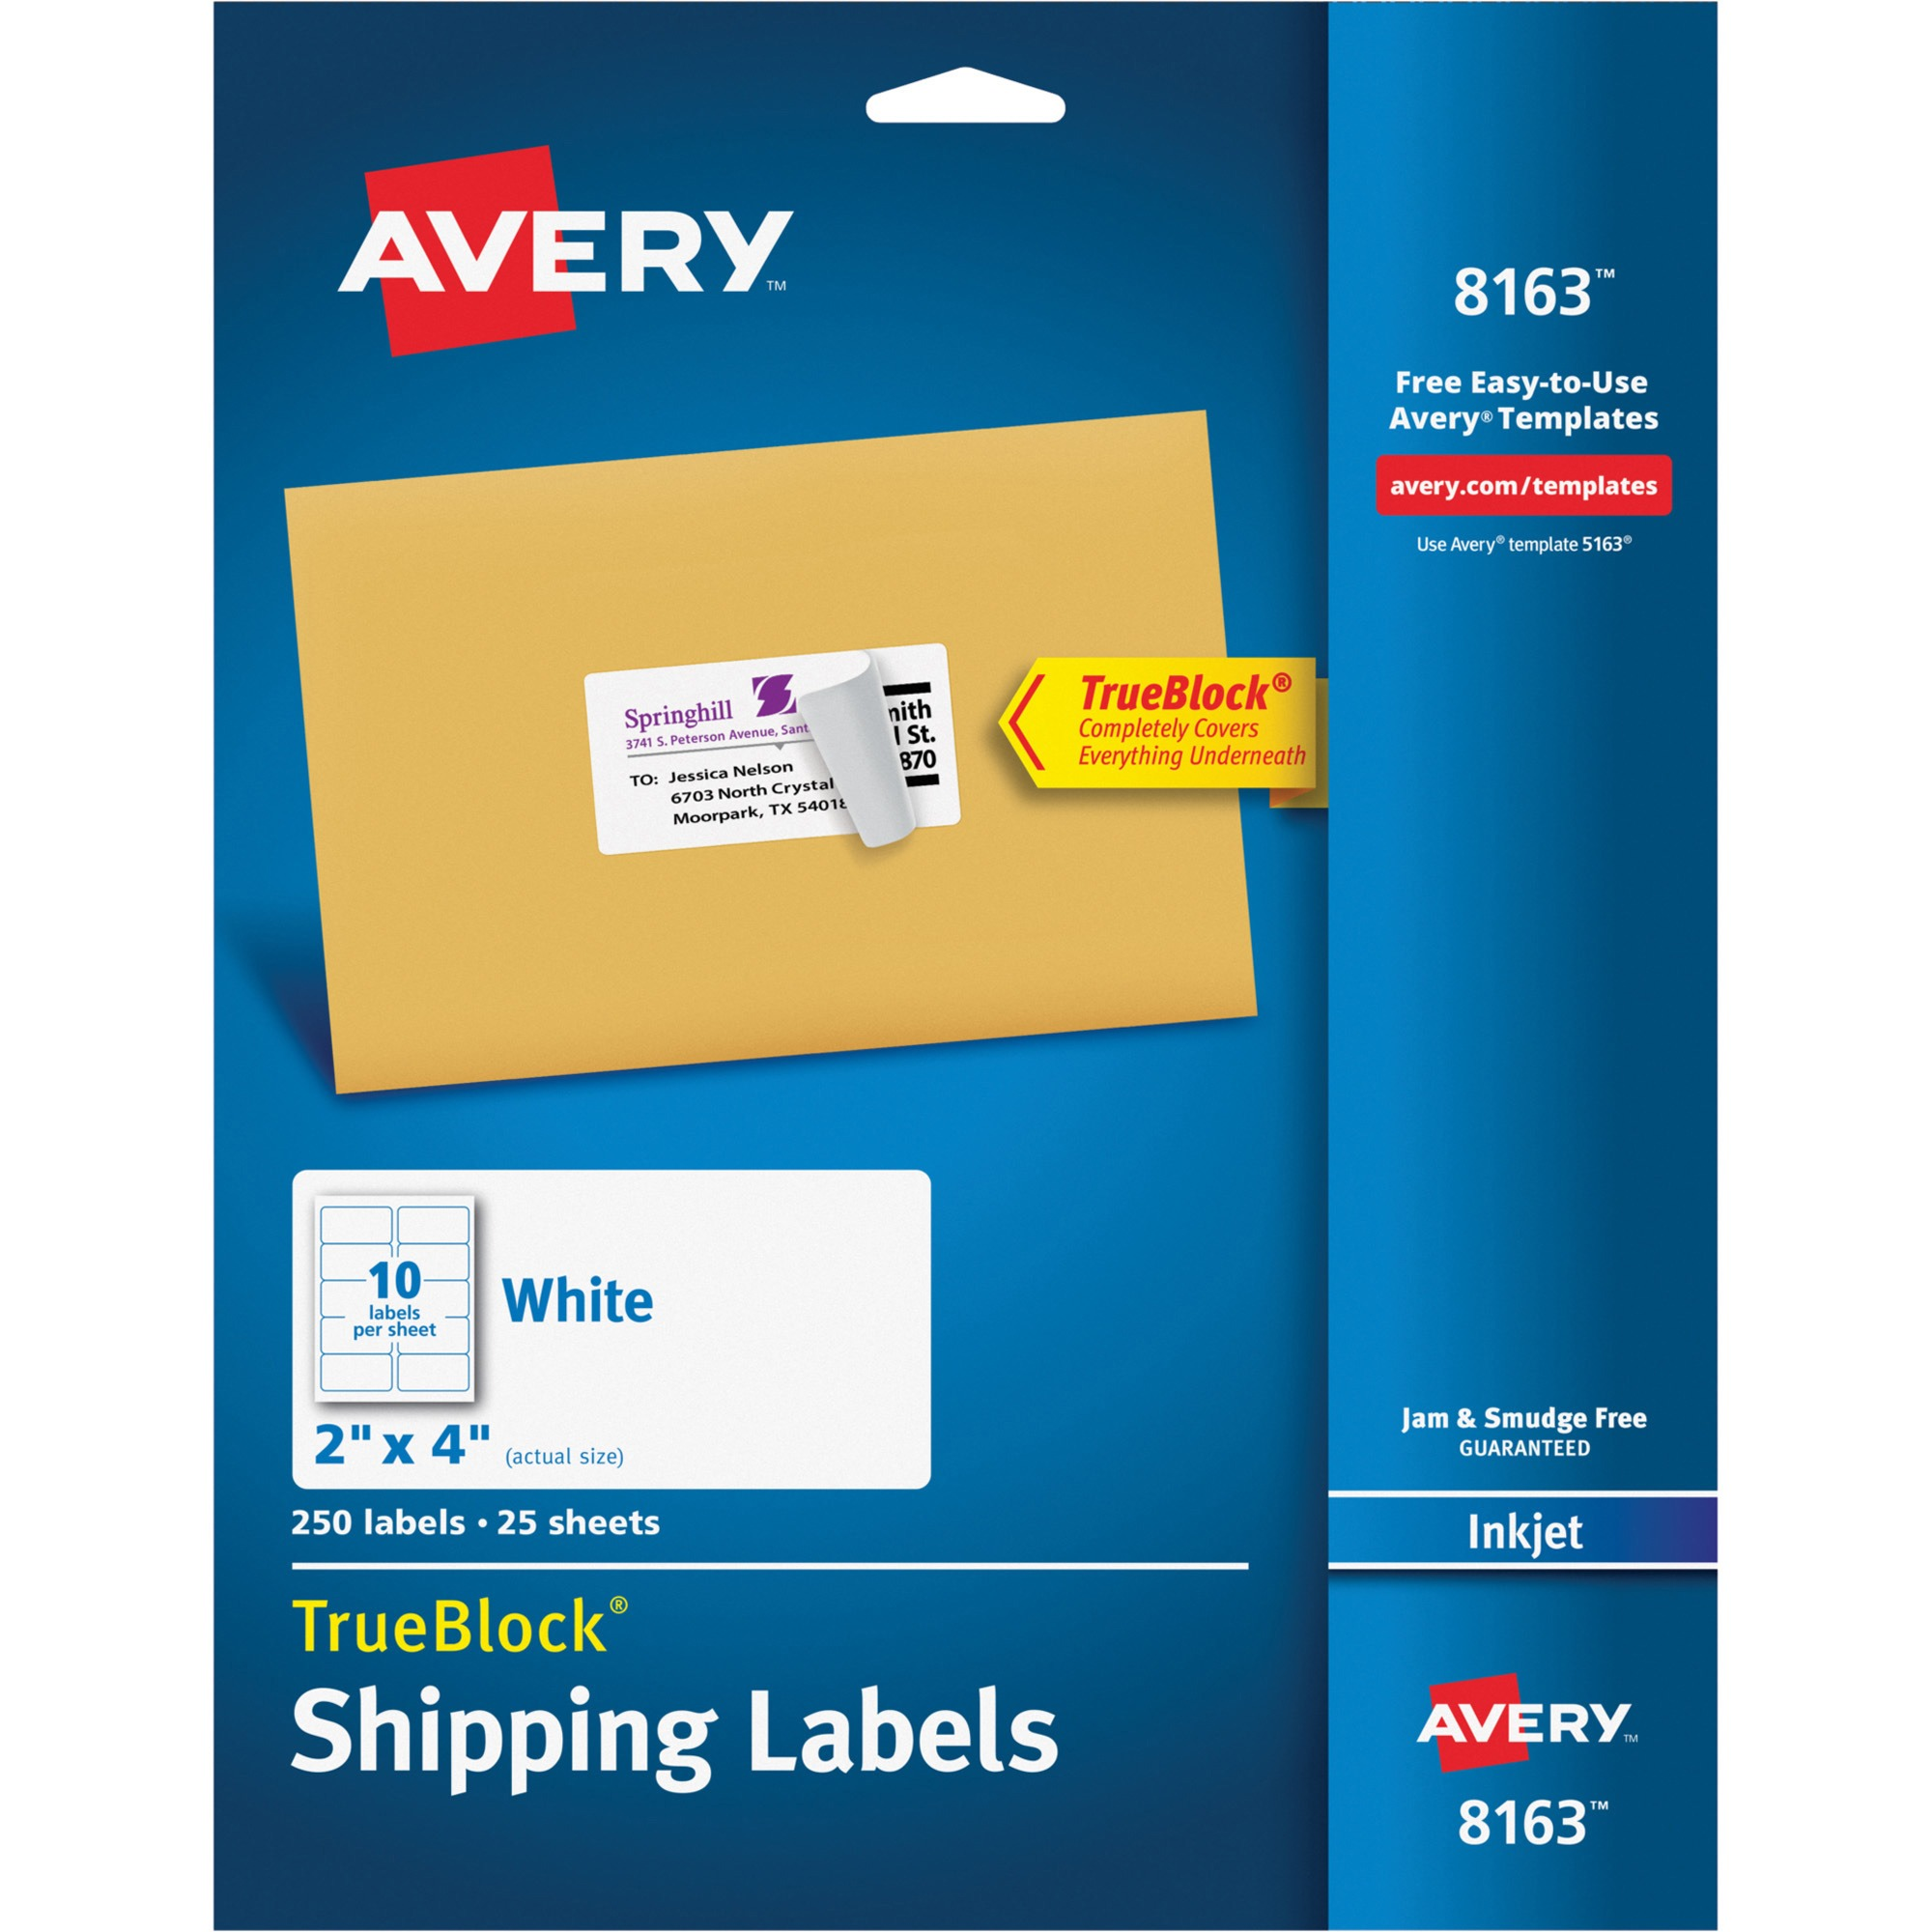 "Avery(R) Shipping Labels with TrueBlock(R) Technology for Inkjet Printers 8163, 2"" x 4"", Pack of 250"